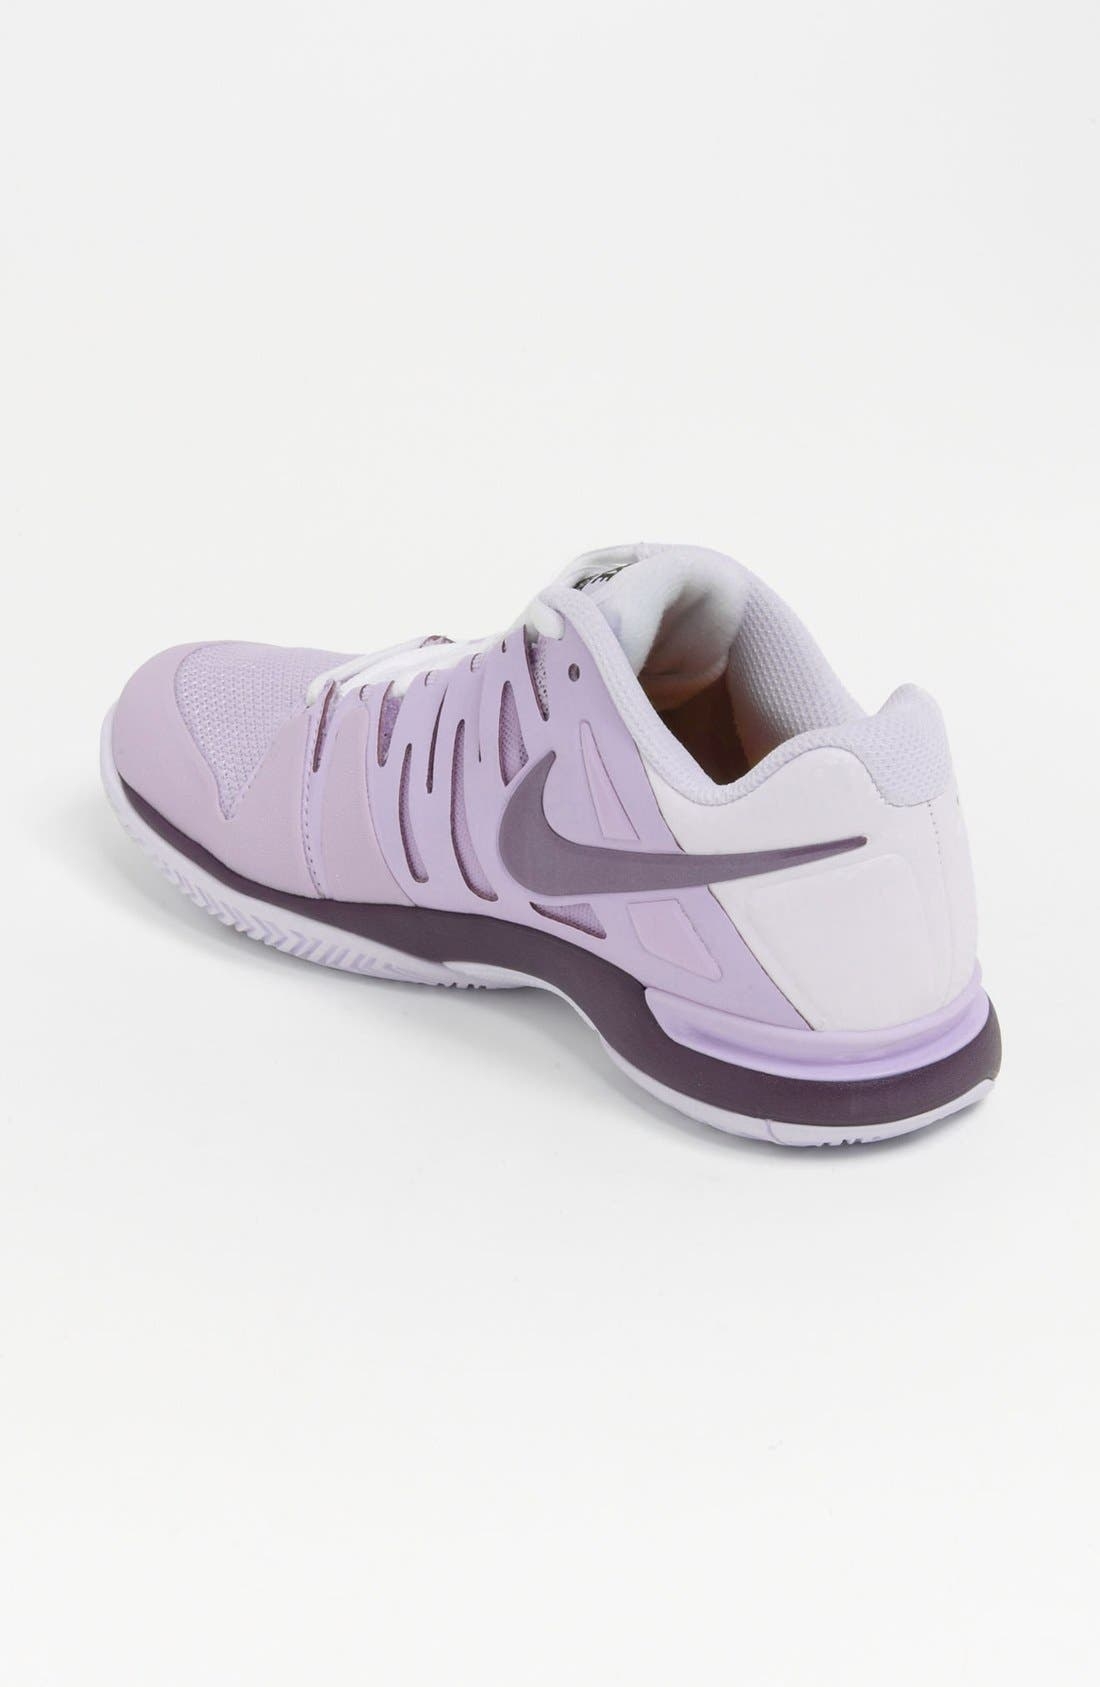 Alternate Image 2  - Nike 'Zoom Vapor 9 Tour' Tennis Shoe (Women)